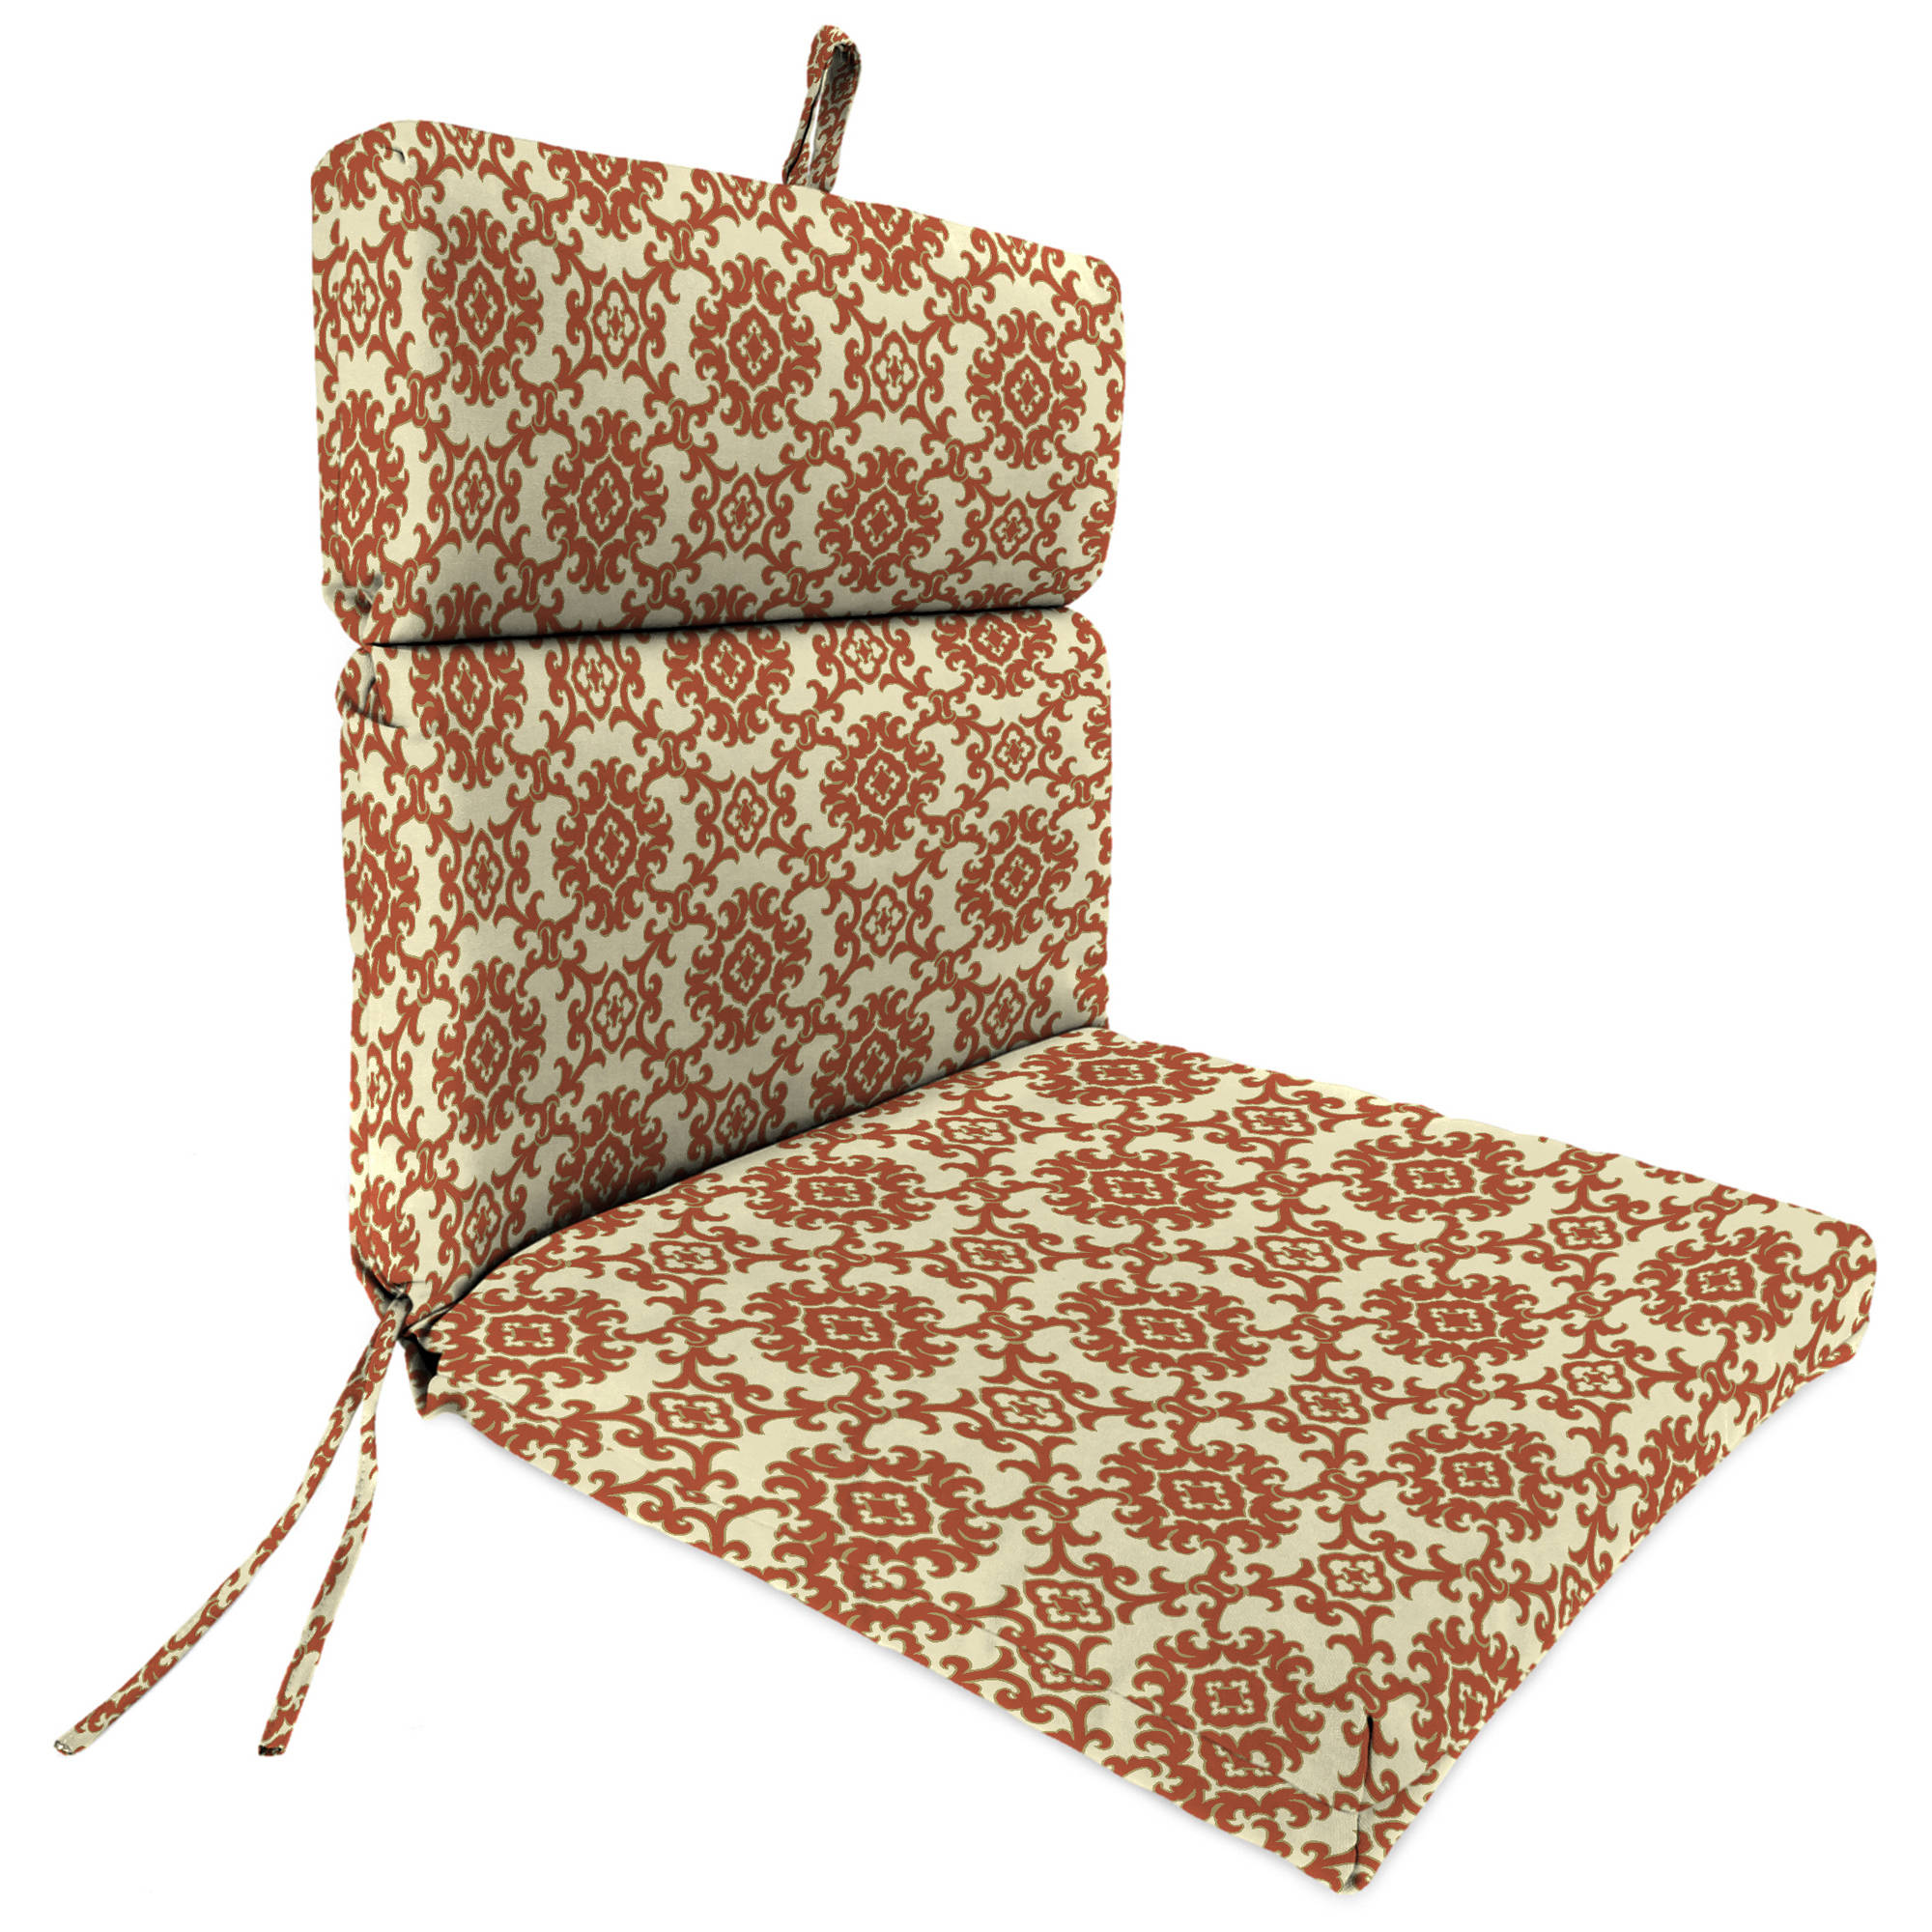 Details about jordan manufacturing outdoor patio chair cushion medallion toffee